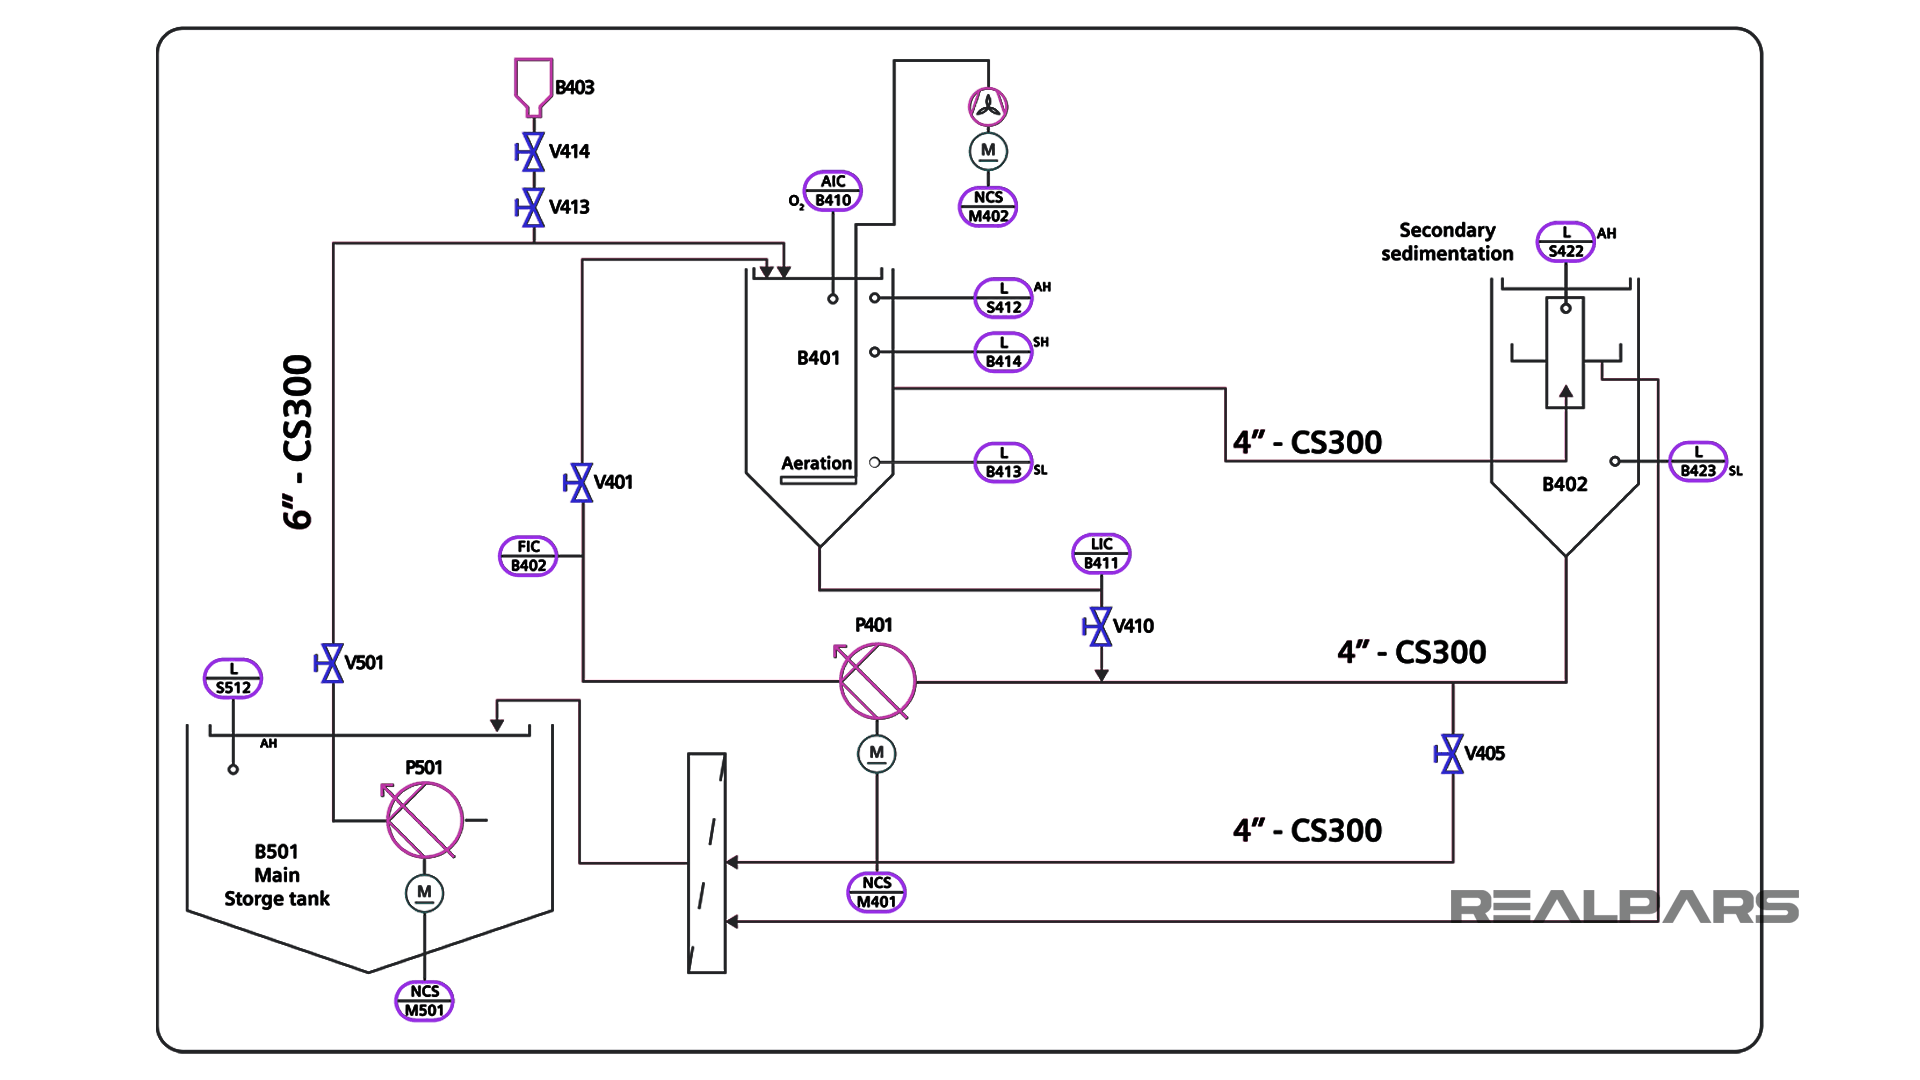 SCADA graphics from P&ID.